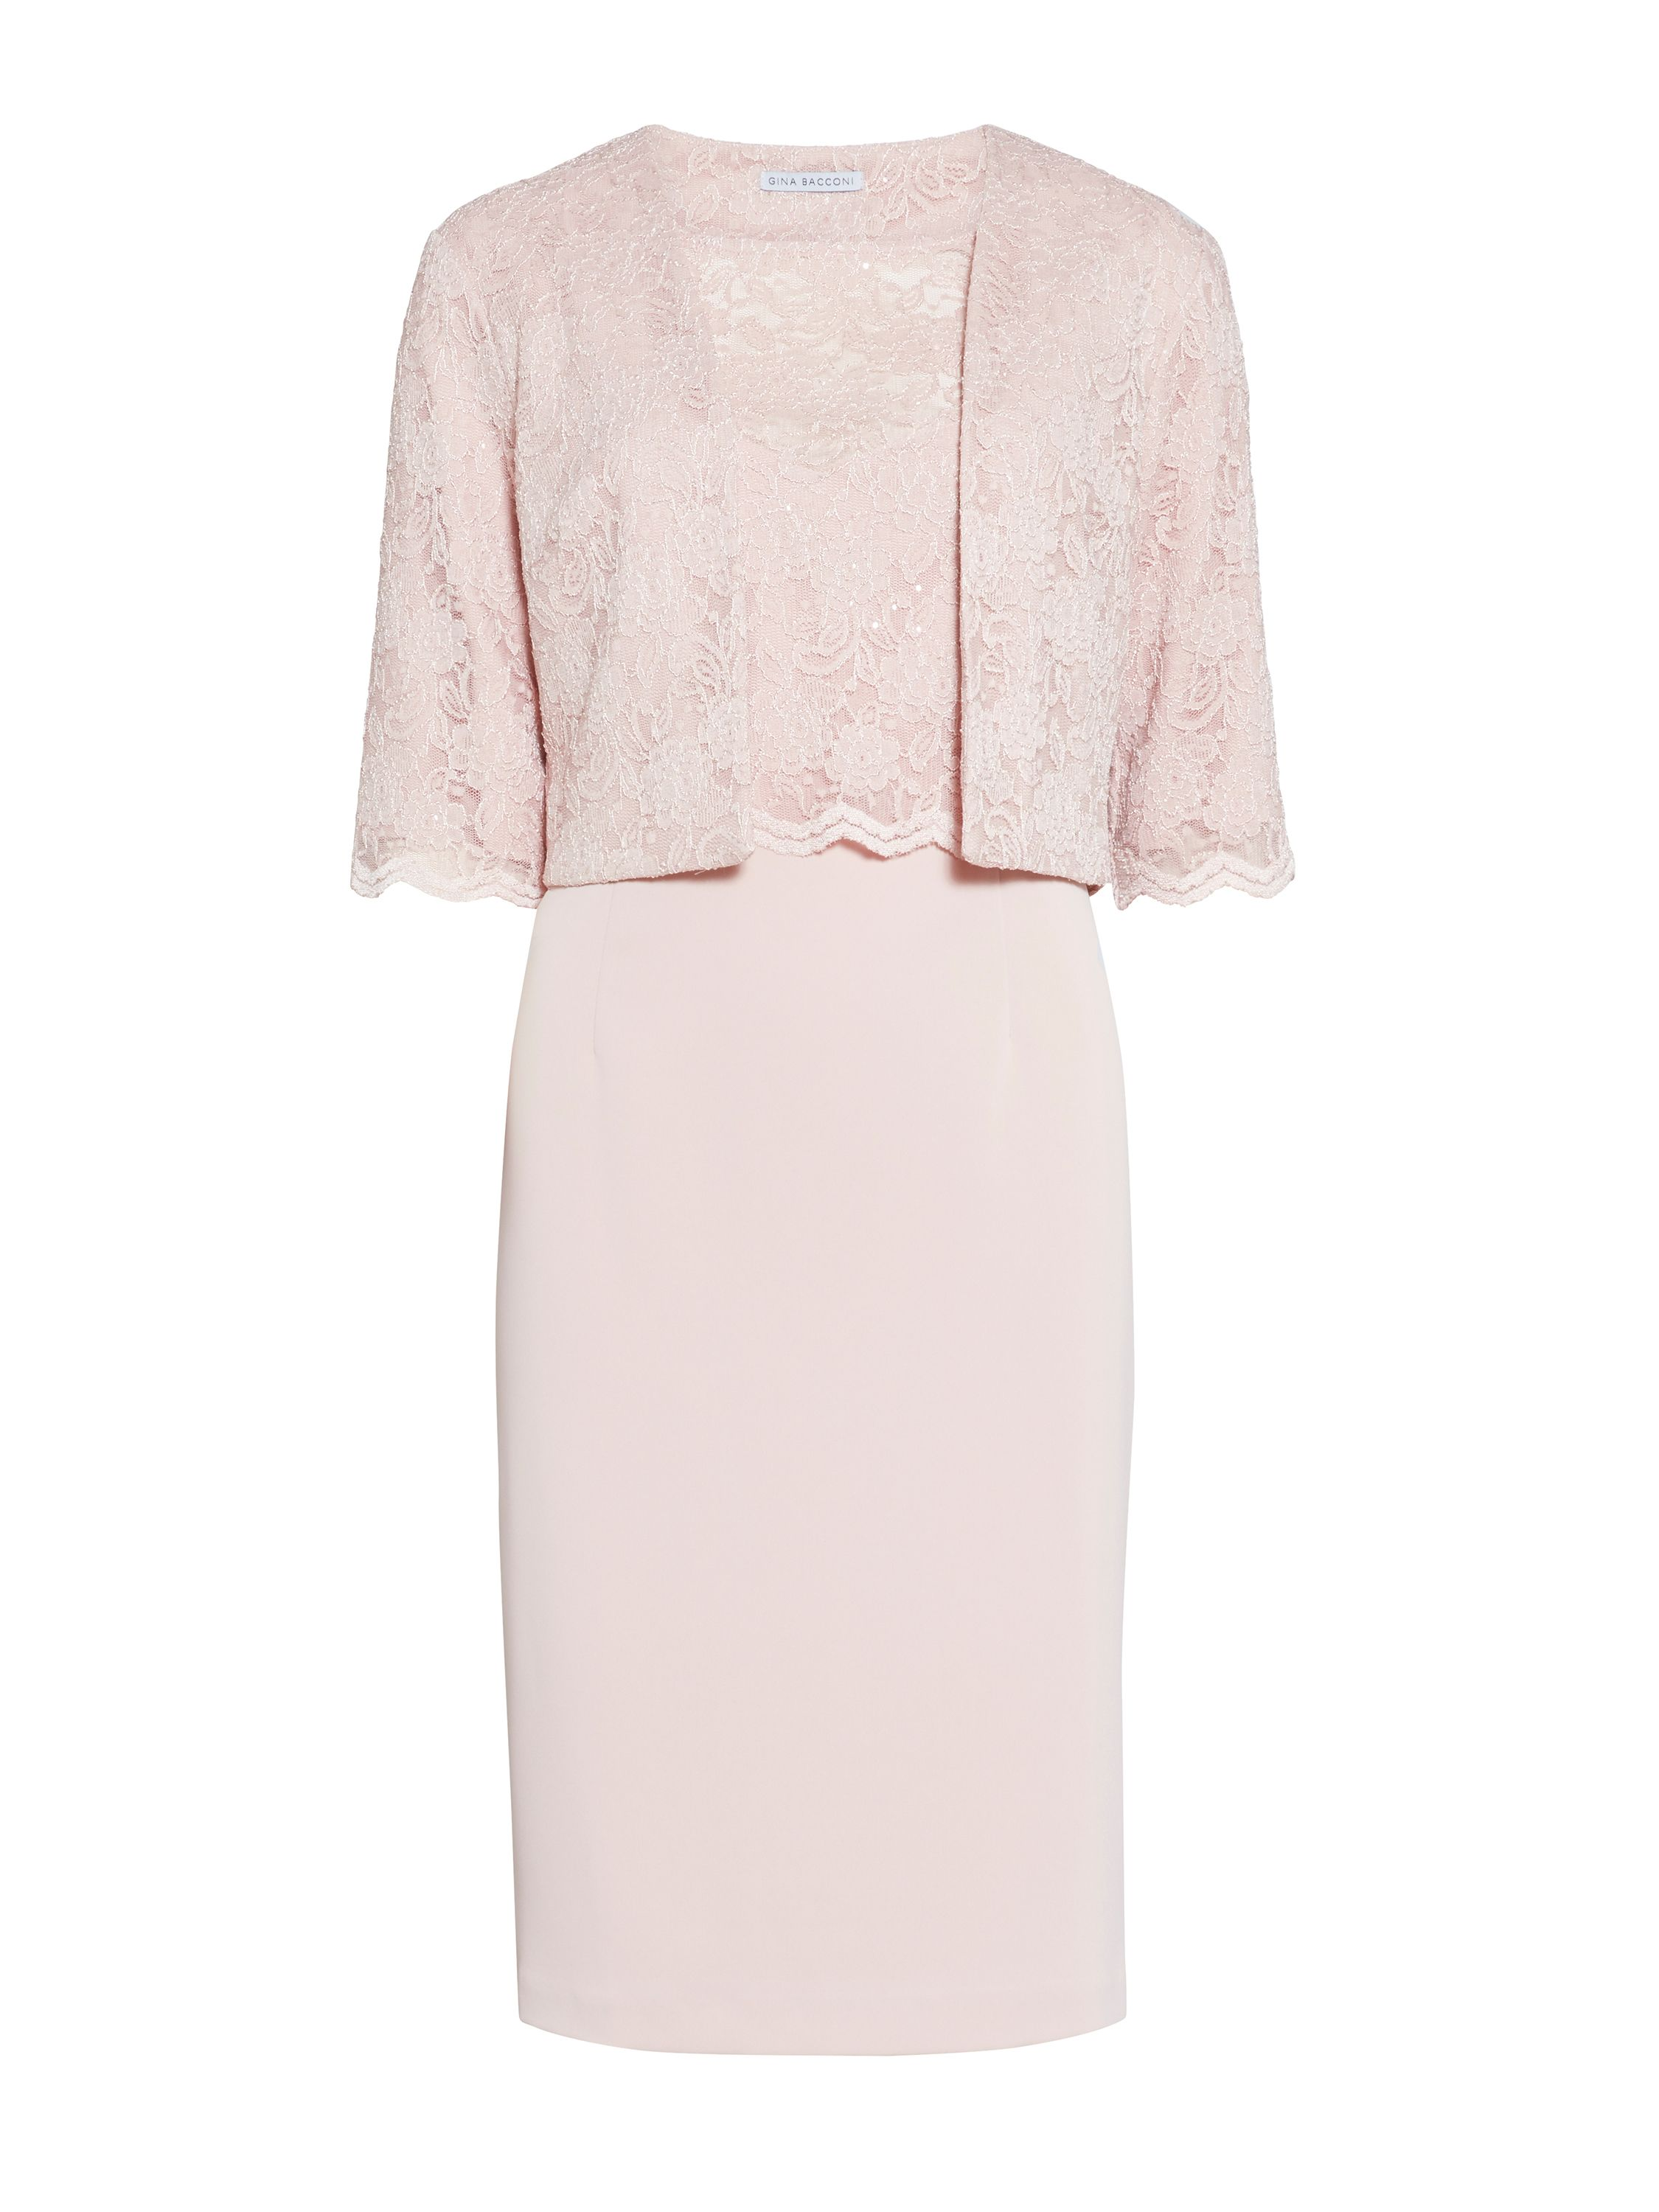 Gina Bacconi Crepe and stretch lace dress and jacket, Pink